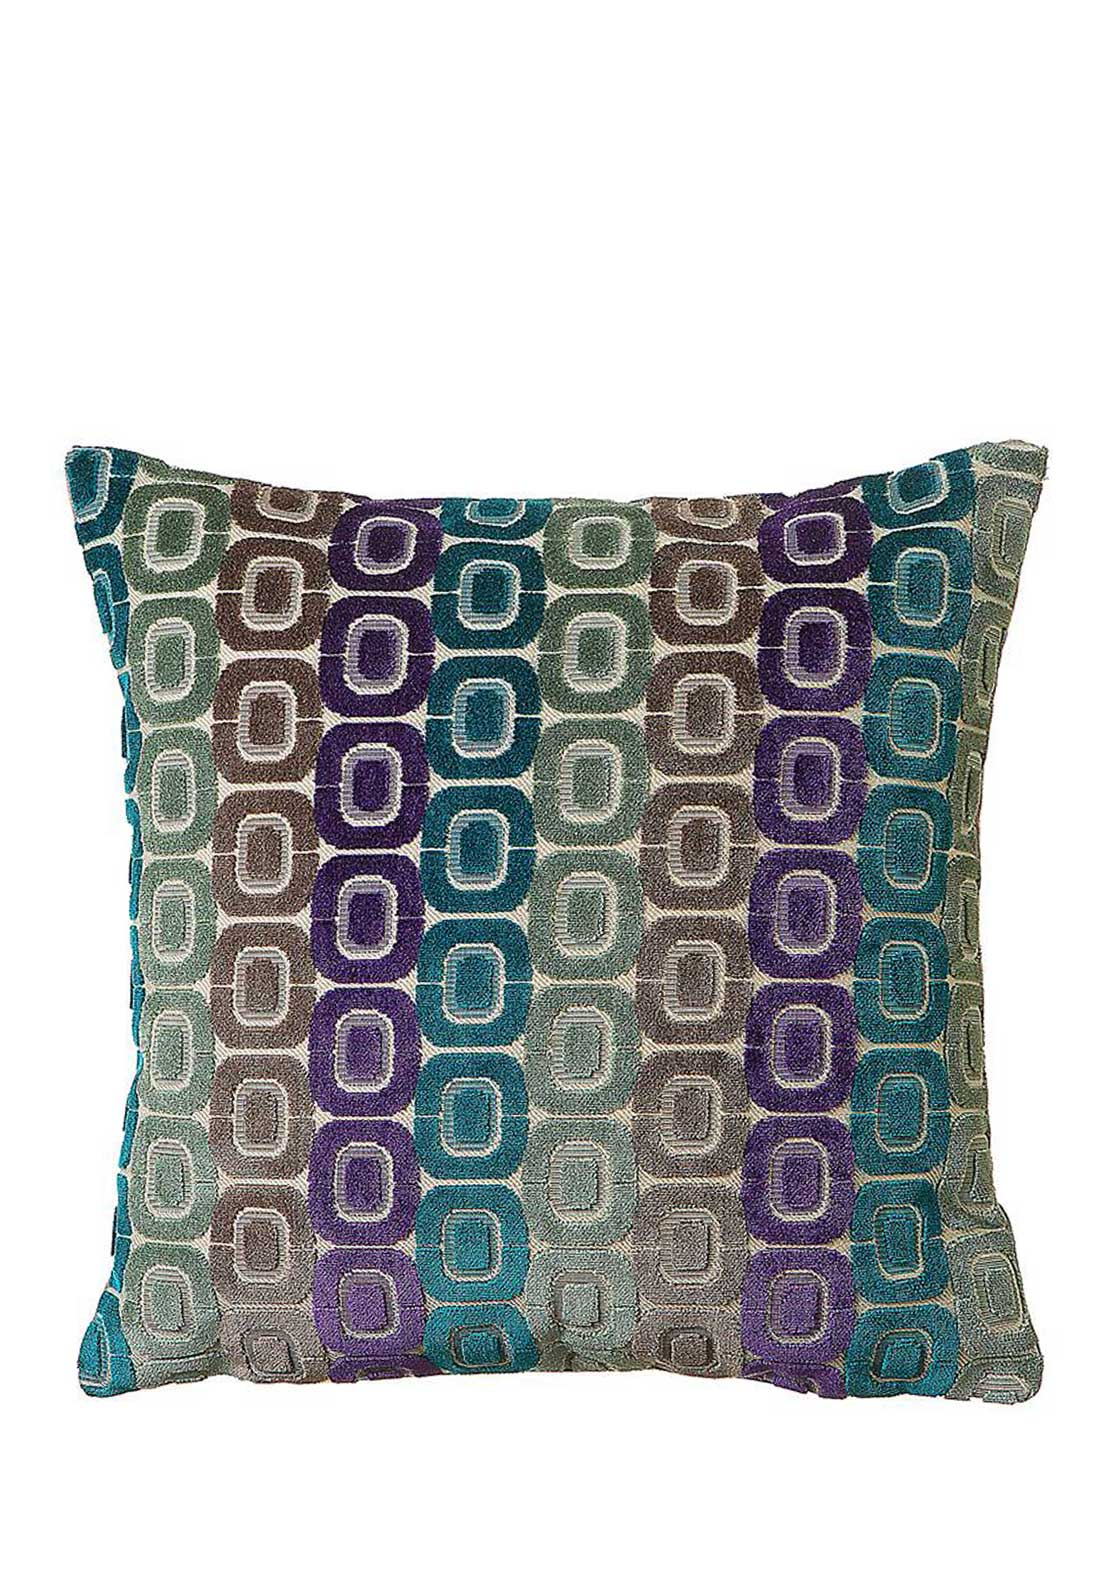 Scatterbox Oracle Cushion, 45 x 45cm, Turquoise